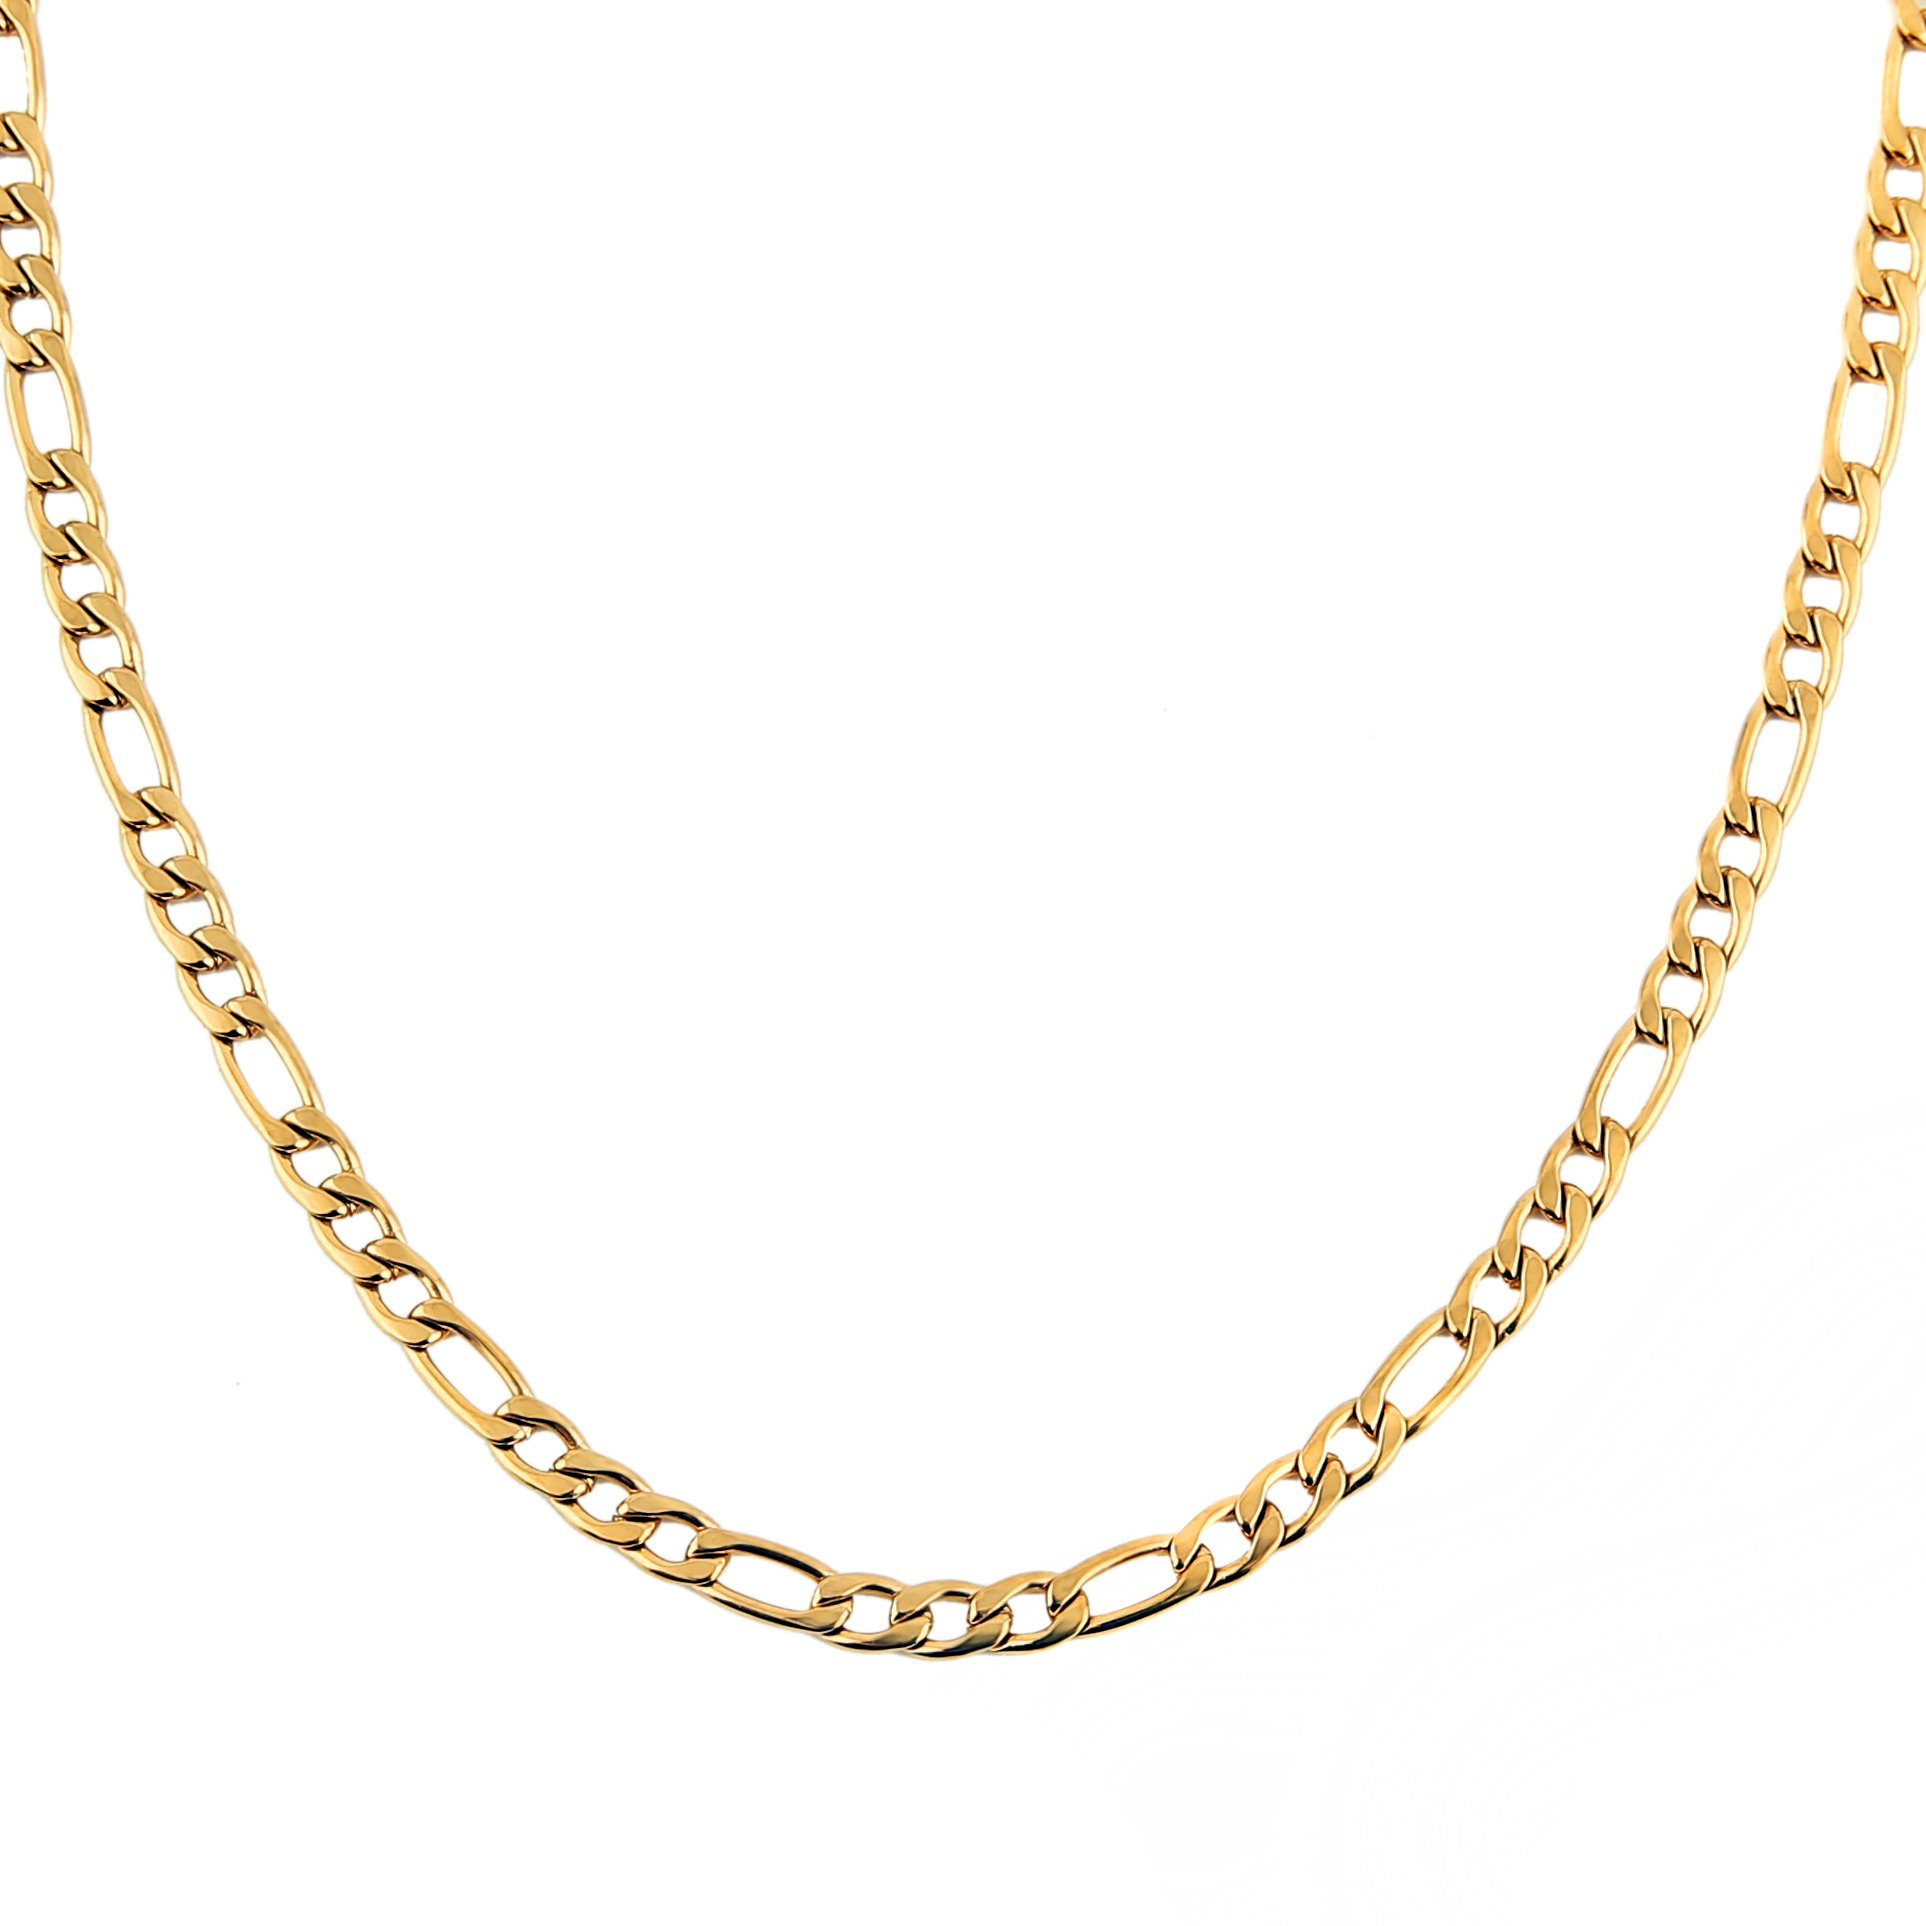 HZMAN Men Women 24k Real Gold Plated Figaro Chain 5mm Stainless Steel Necklace 2 Colors Gold Silve (gold-plated-stainless-steel, 24)